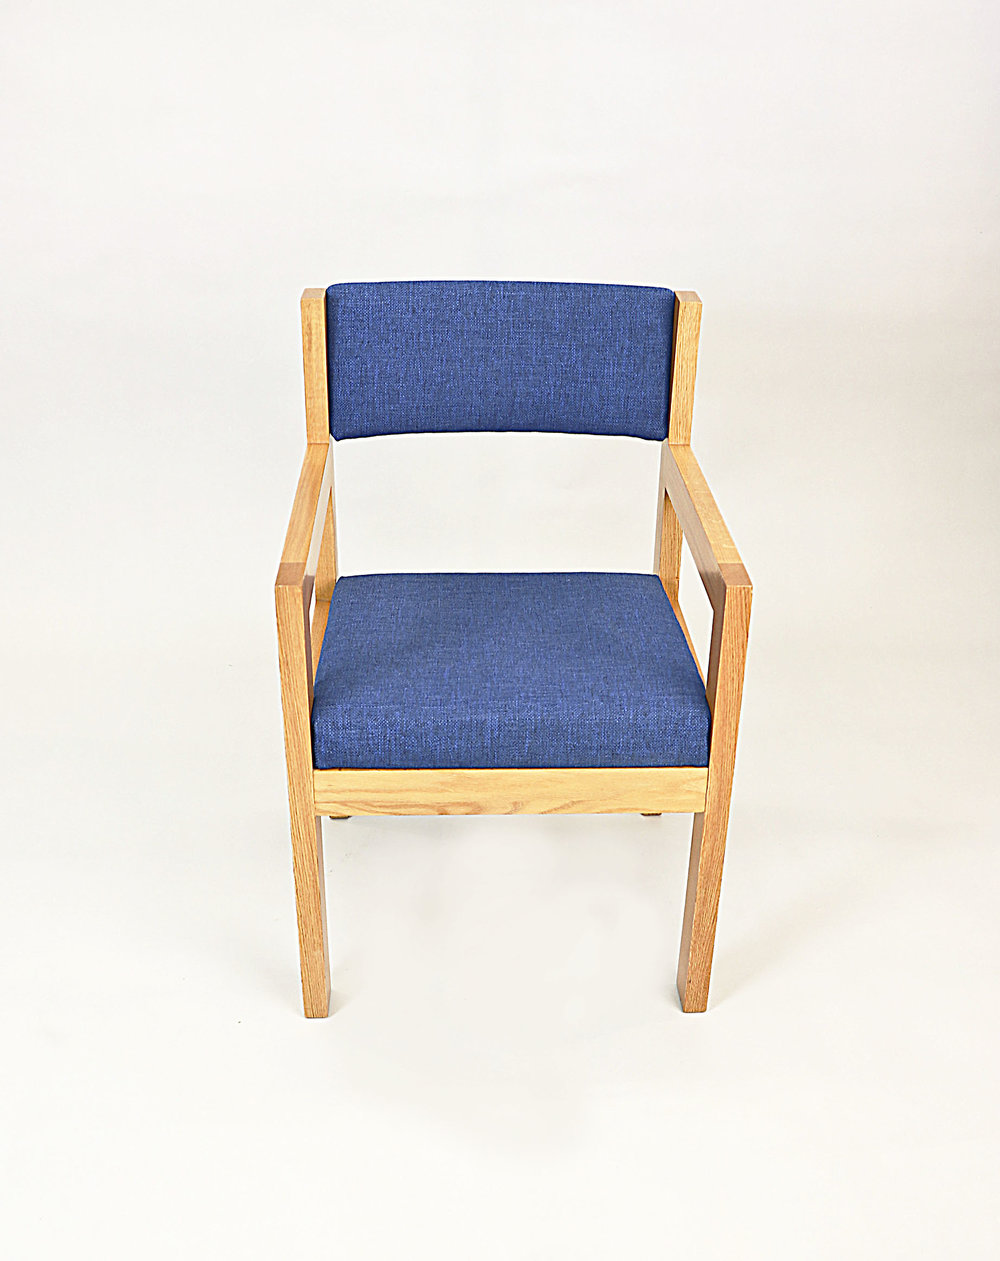 library chair3.jpg